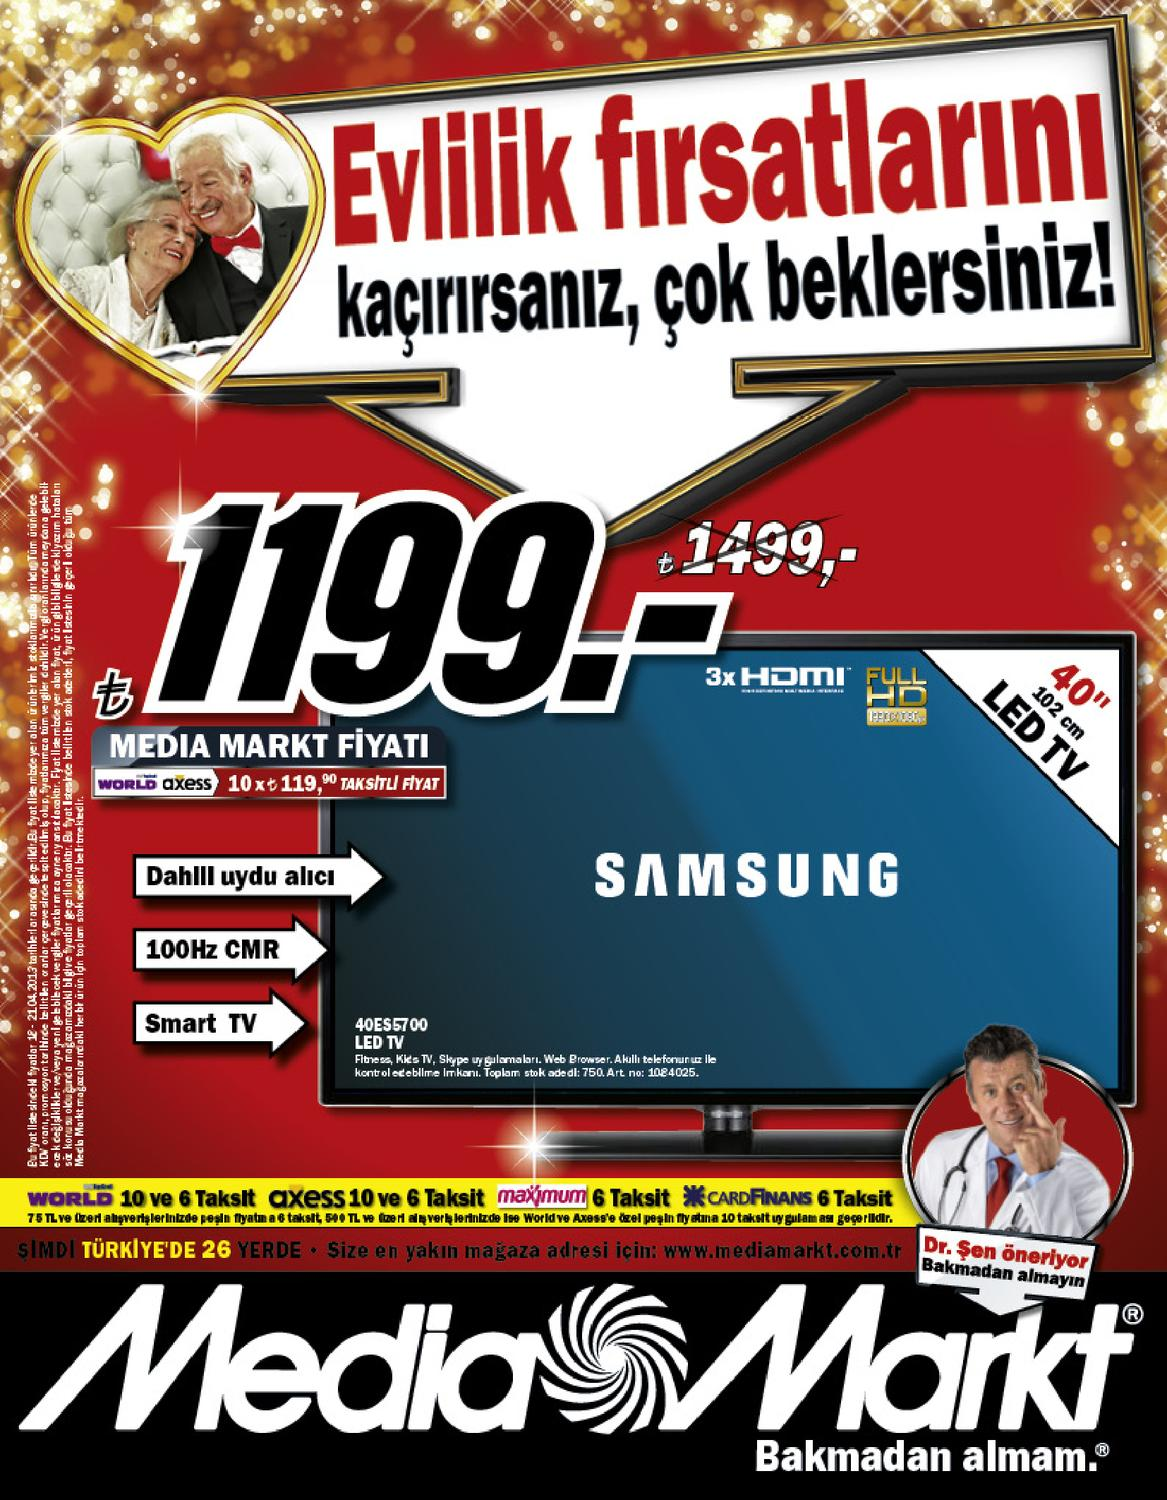 media markt ulusal 18 21 nisan2013 by kataloguindirimler. Black Bedroom Furniture Sets. Home Design Ideas